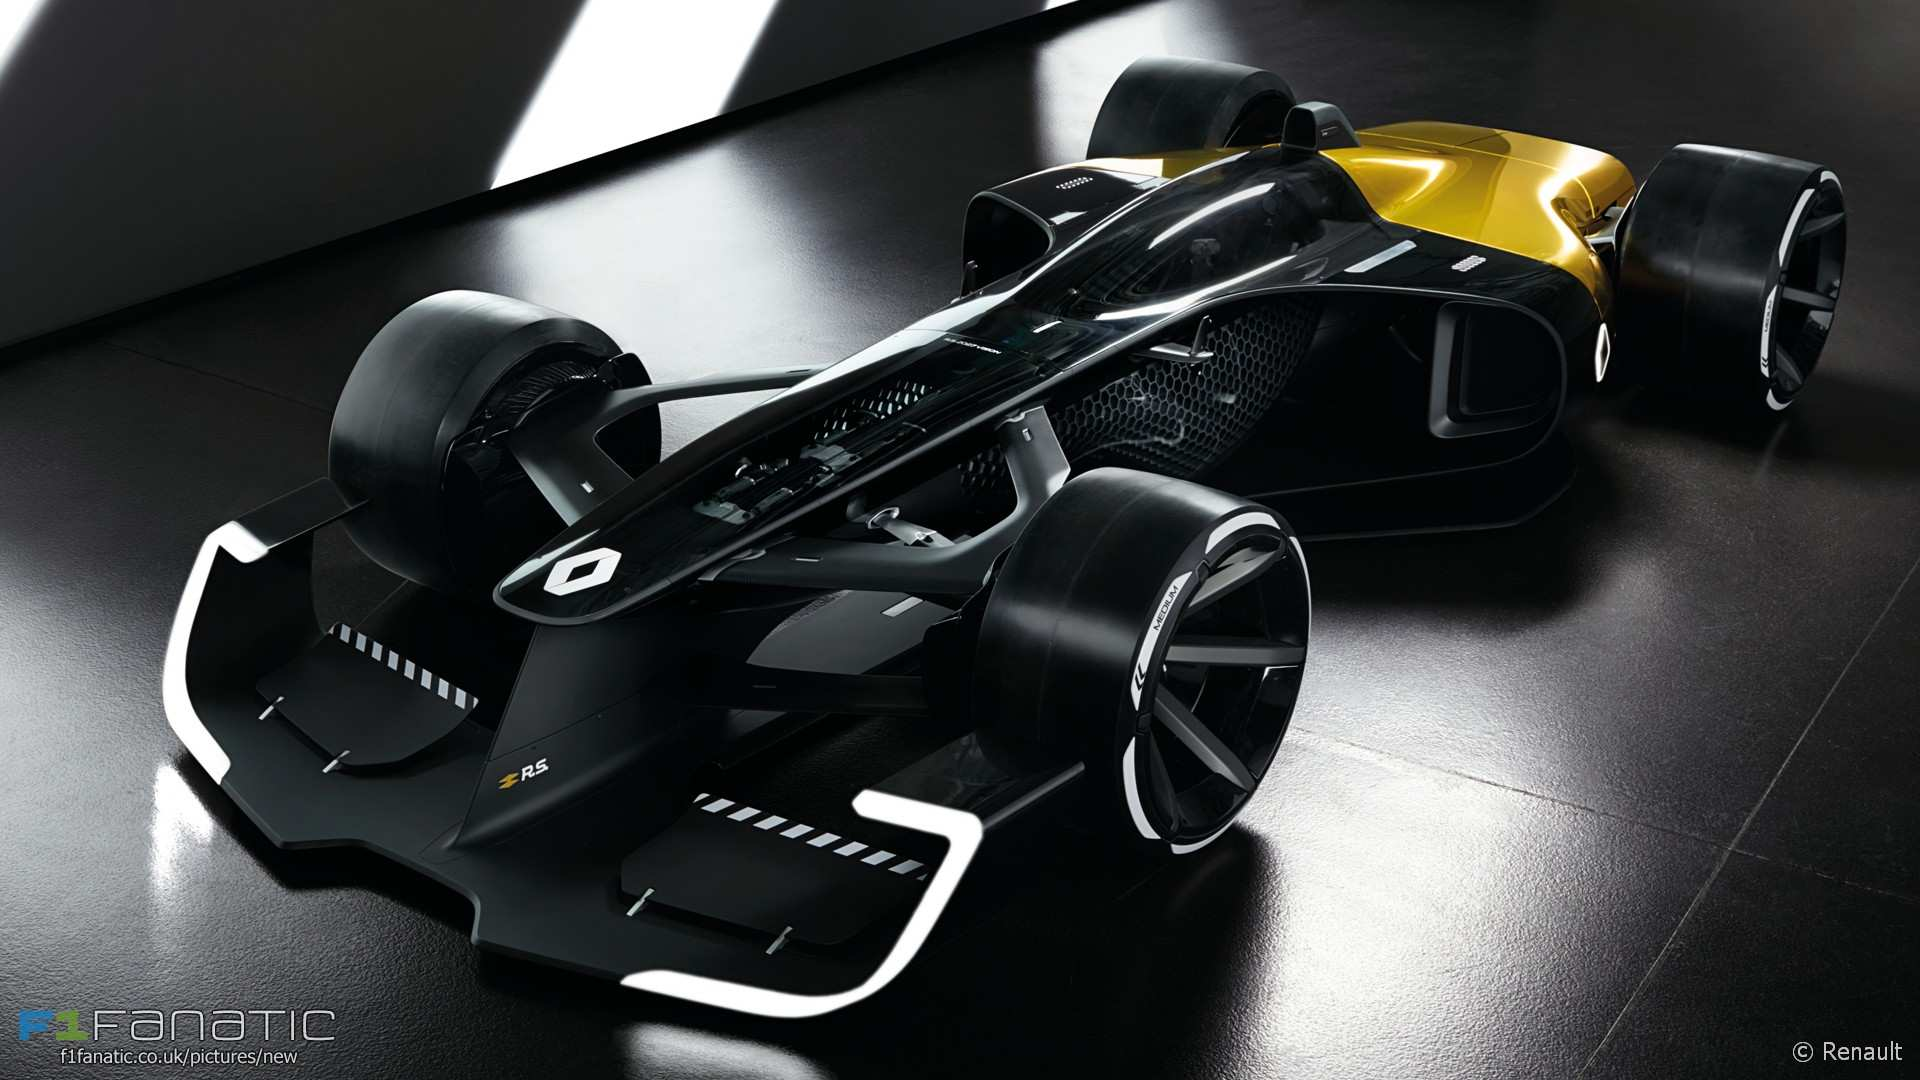 73 New Renault 2020 F1 Images with Renault 2020 F1